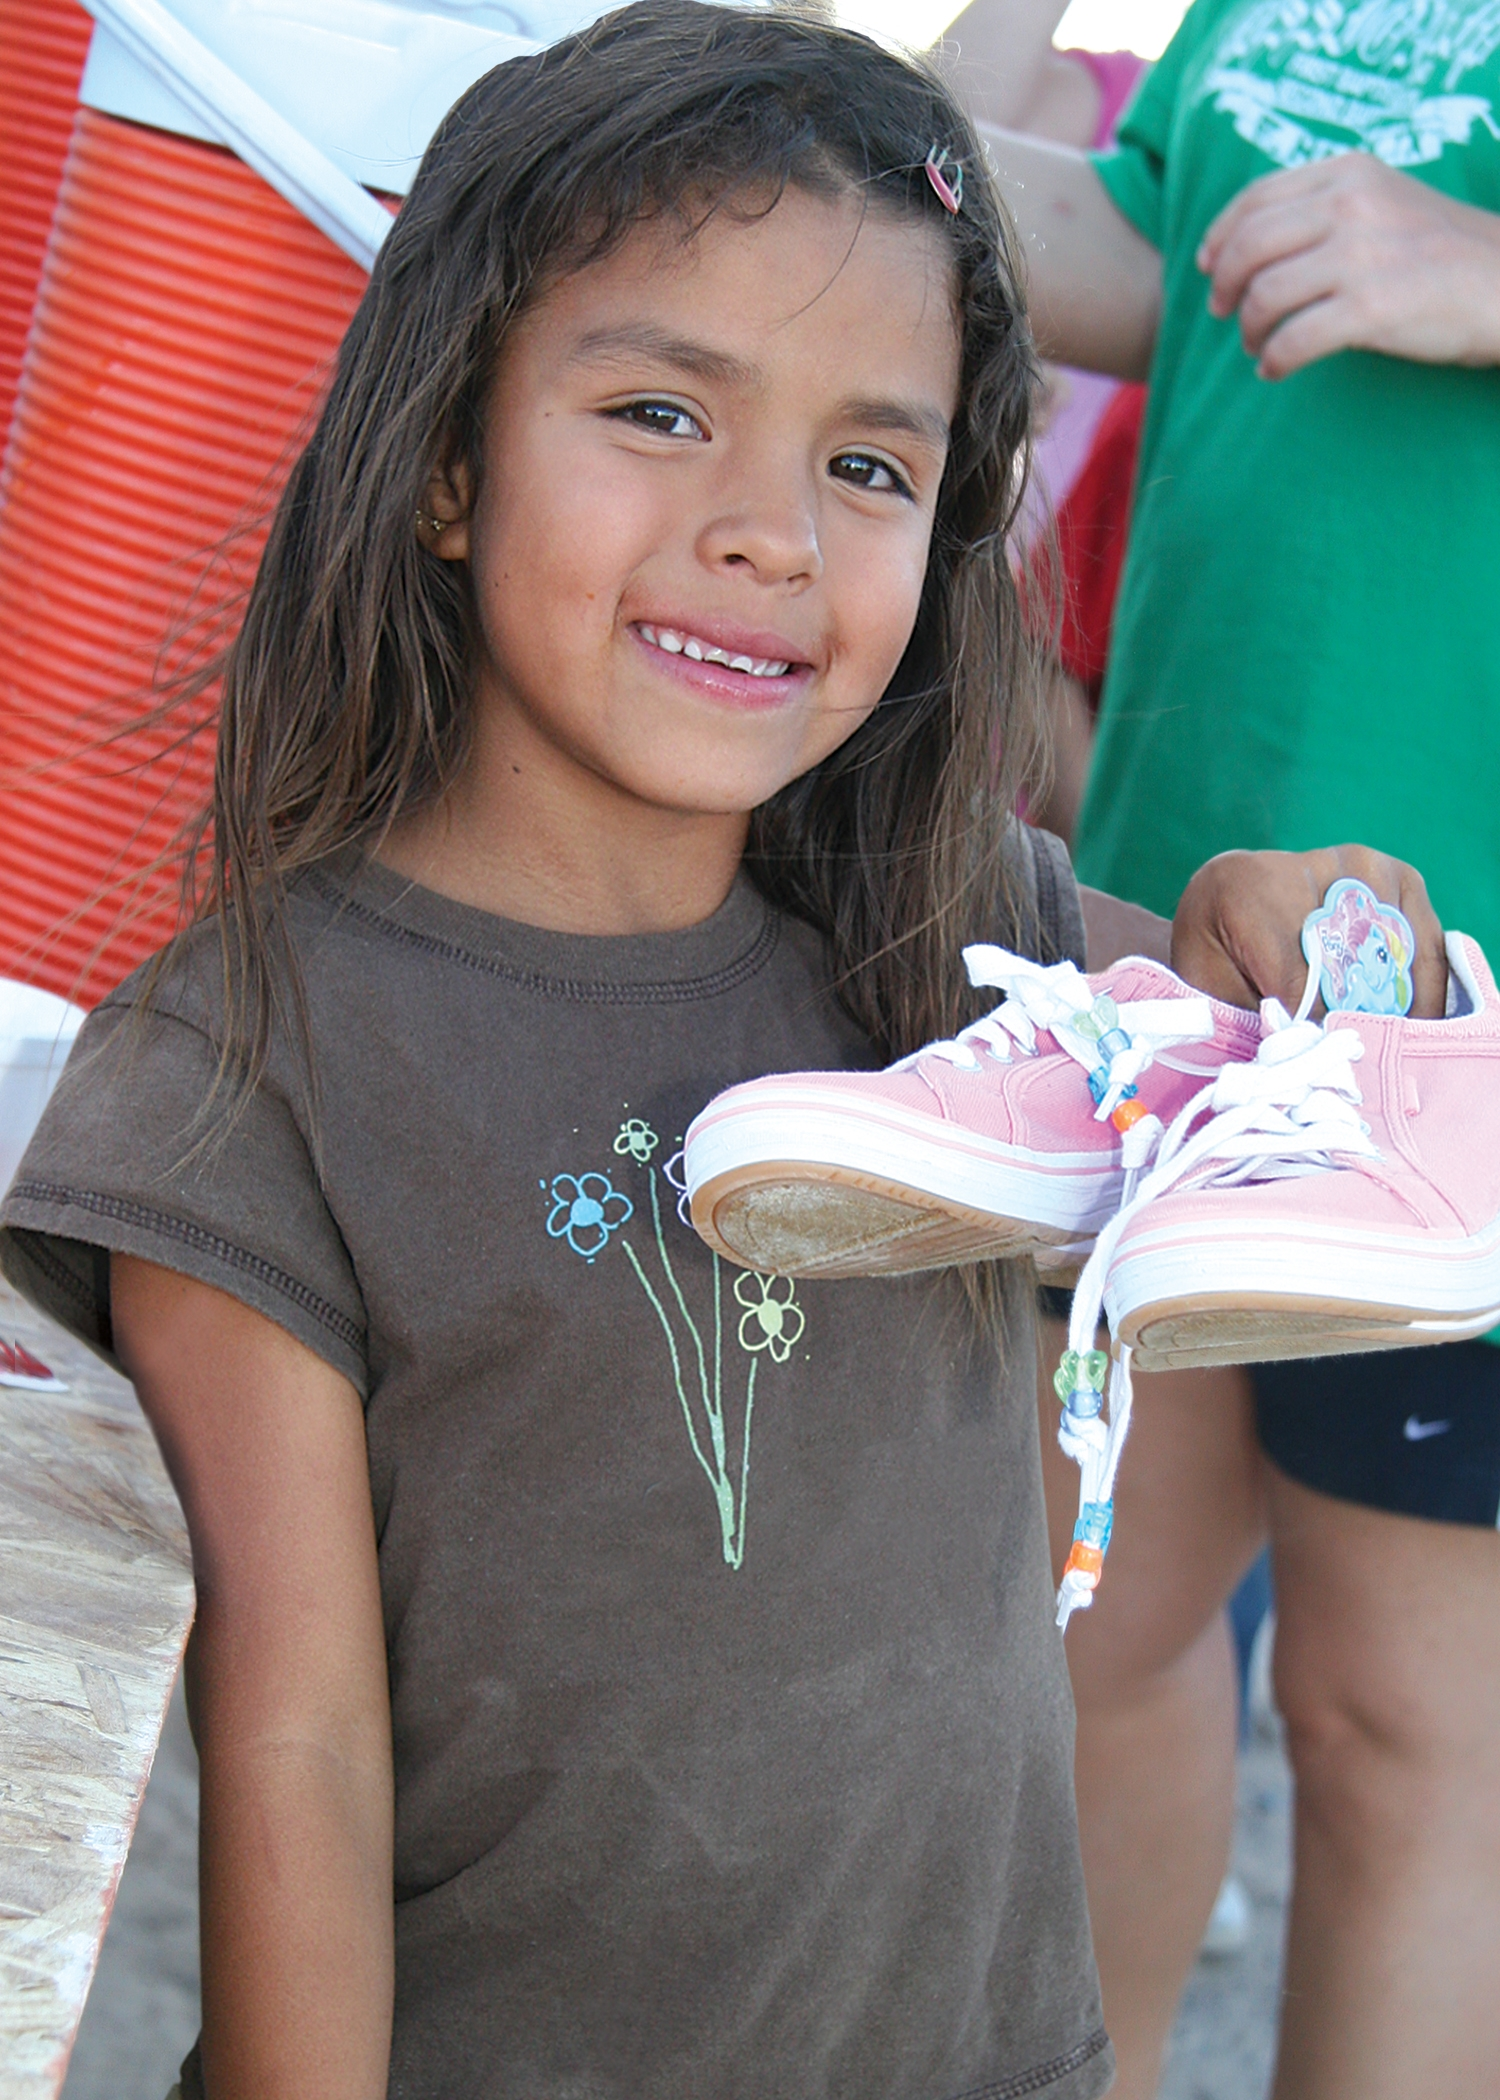 Three million pairs of shoes given for children in need